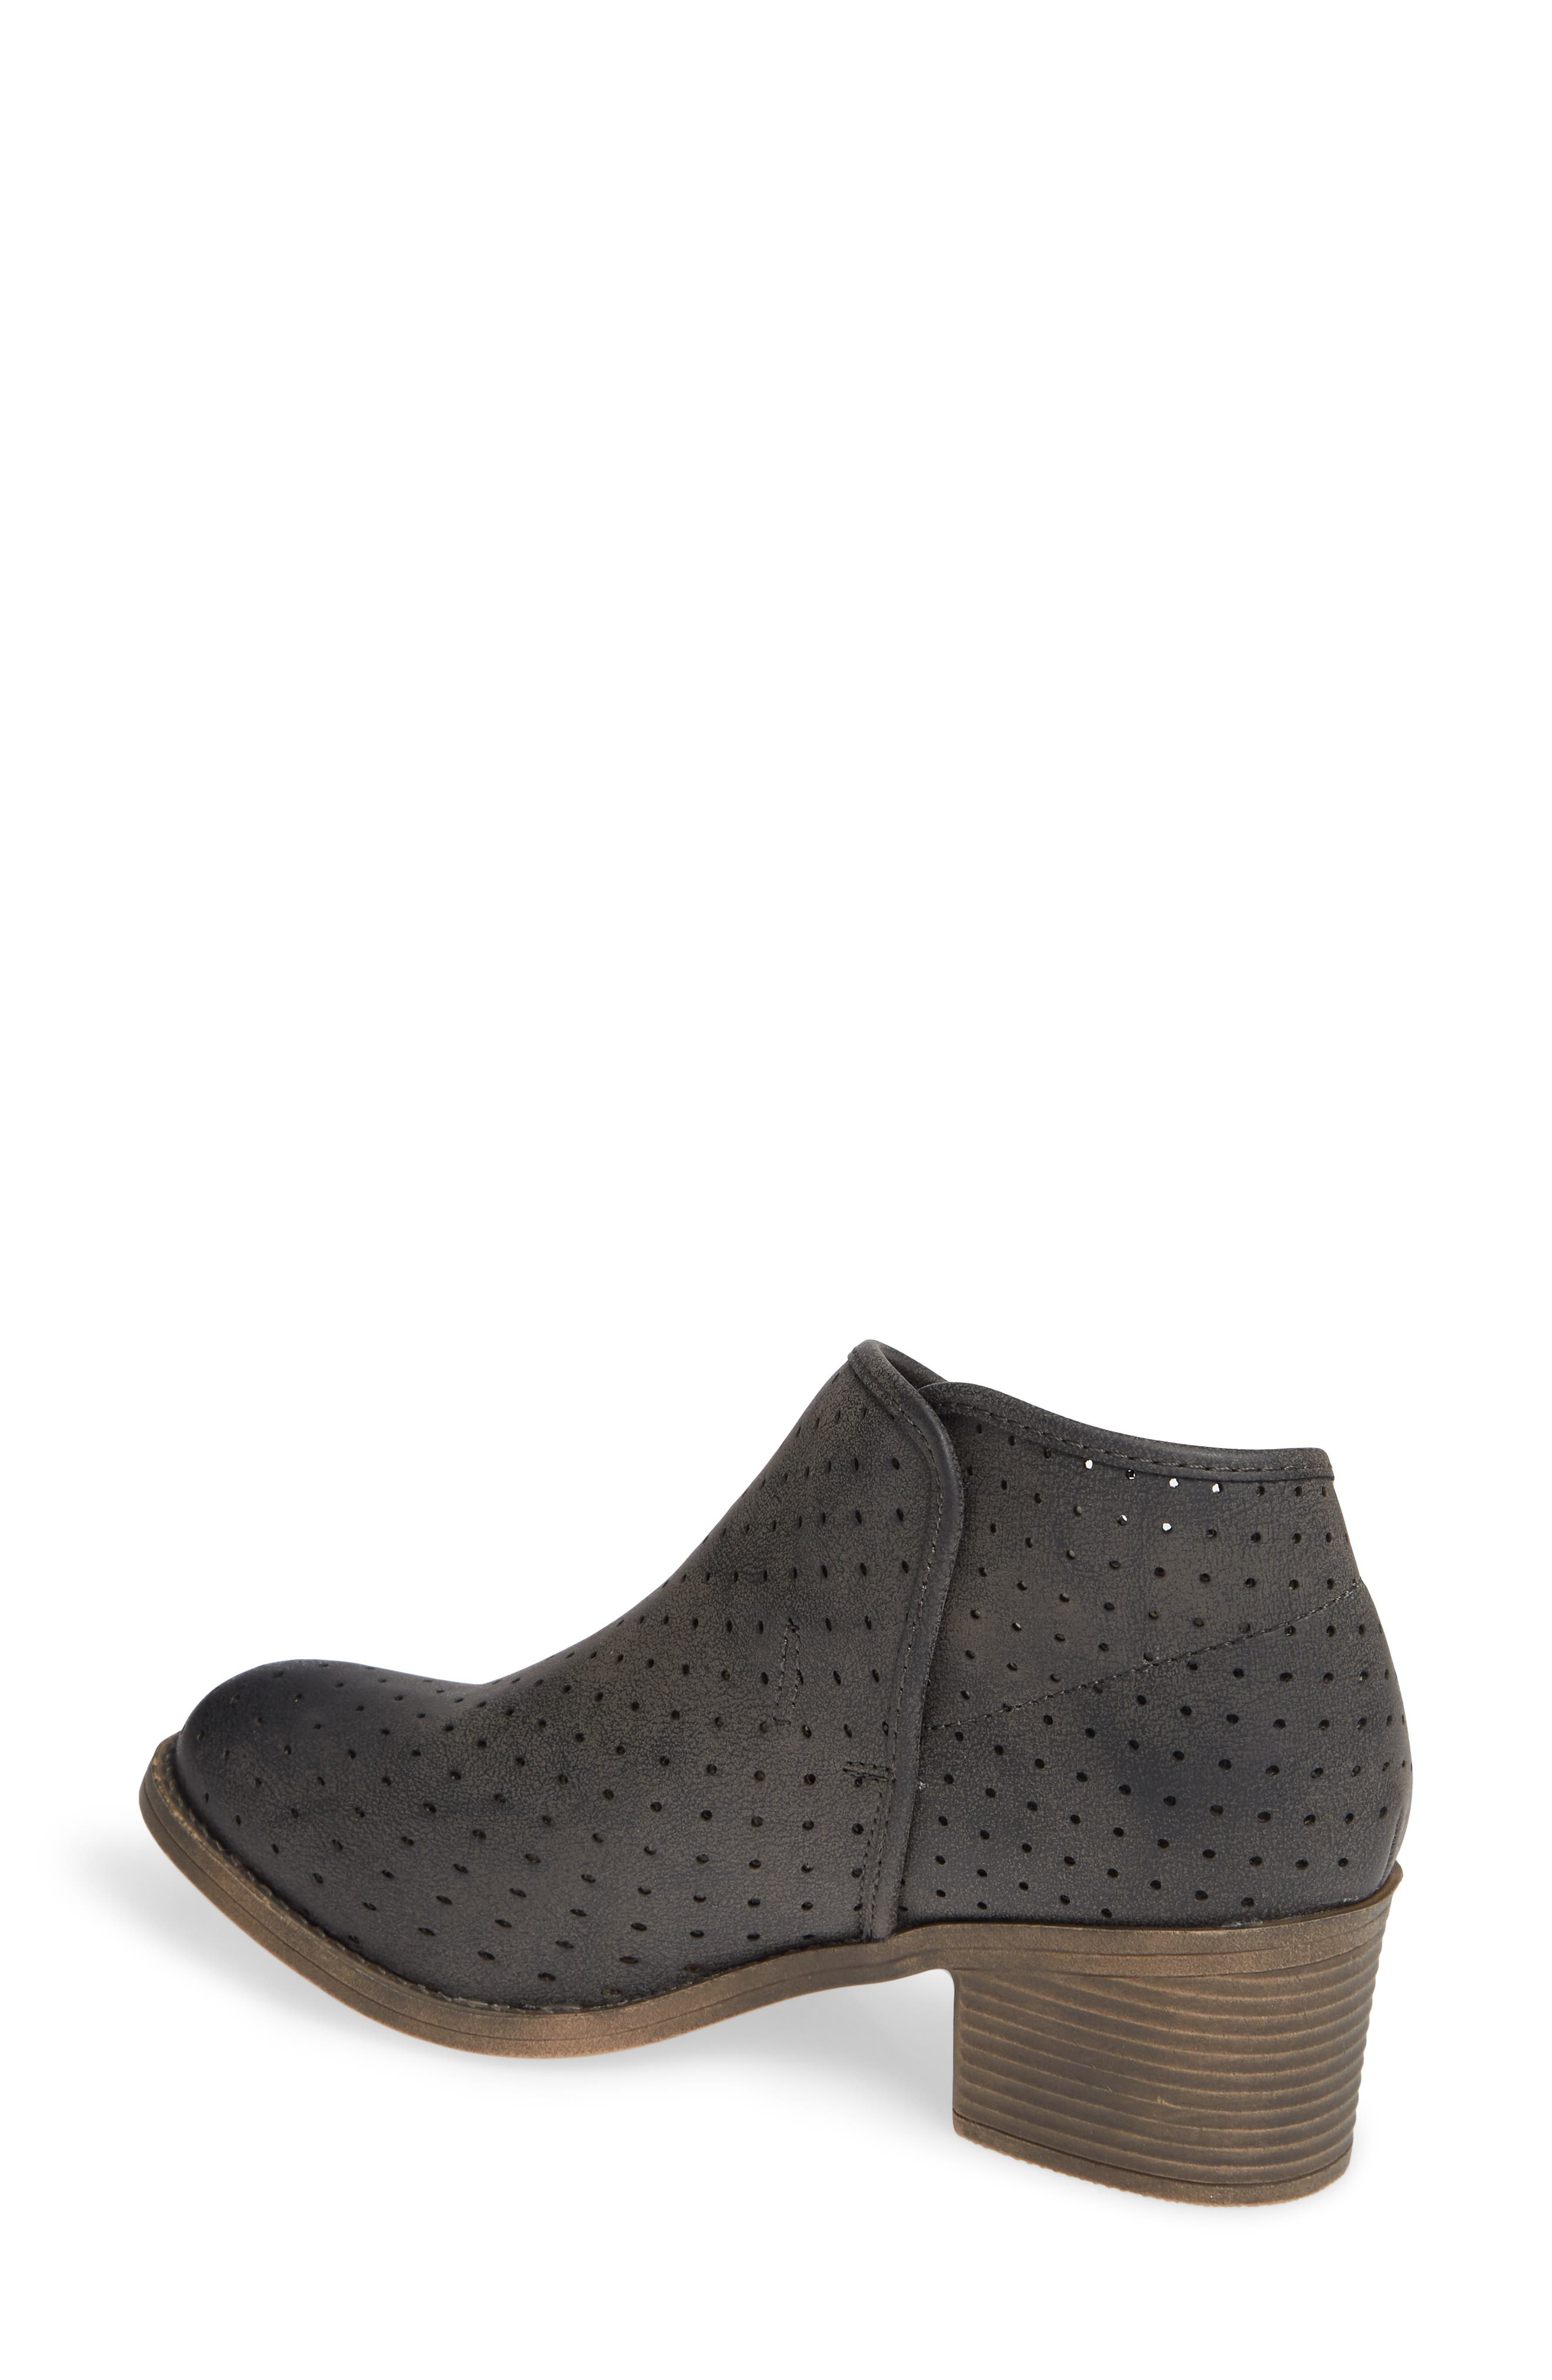 Sunbeams Perforated Bootie,                             Alternate thumbnail 2, color,                             025